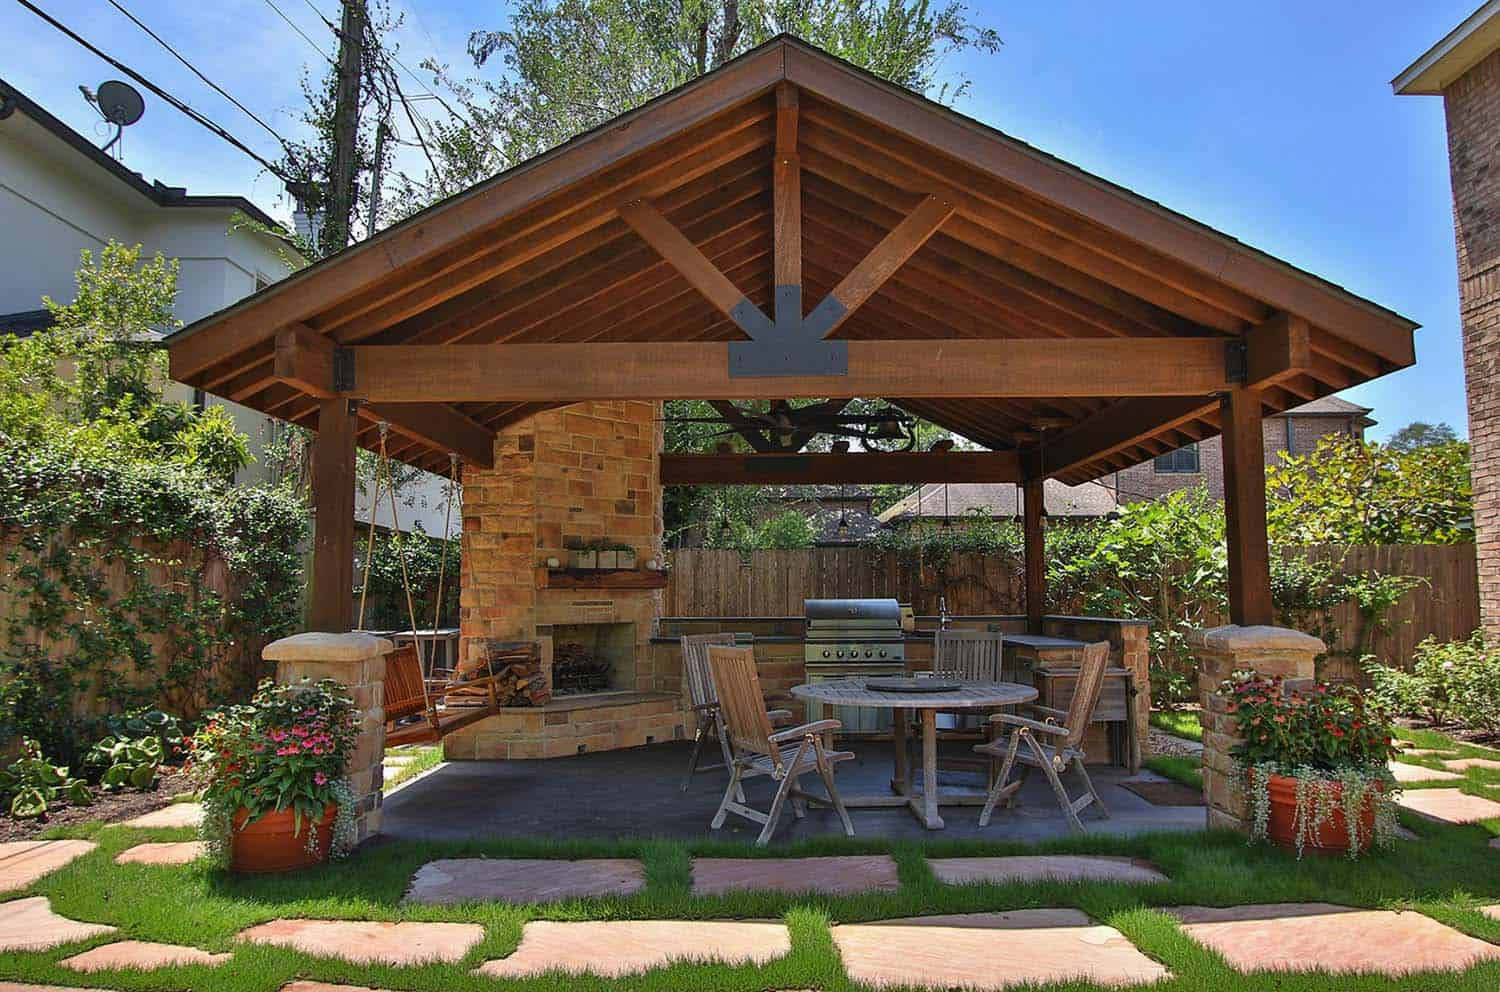 How to transform your outdoor living space?